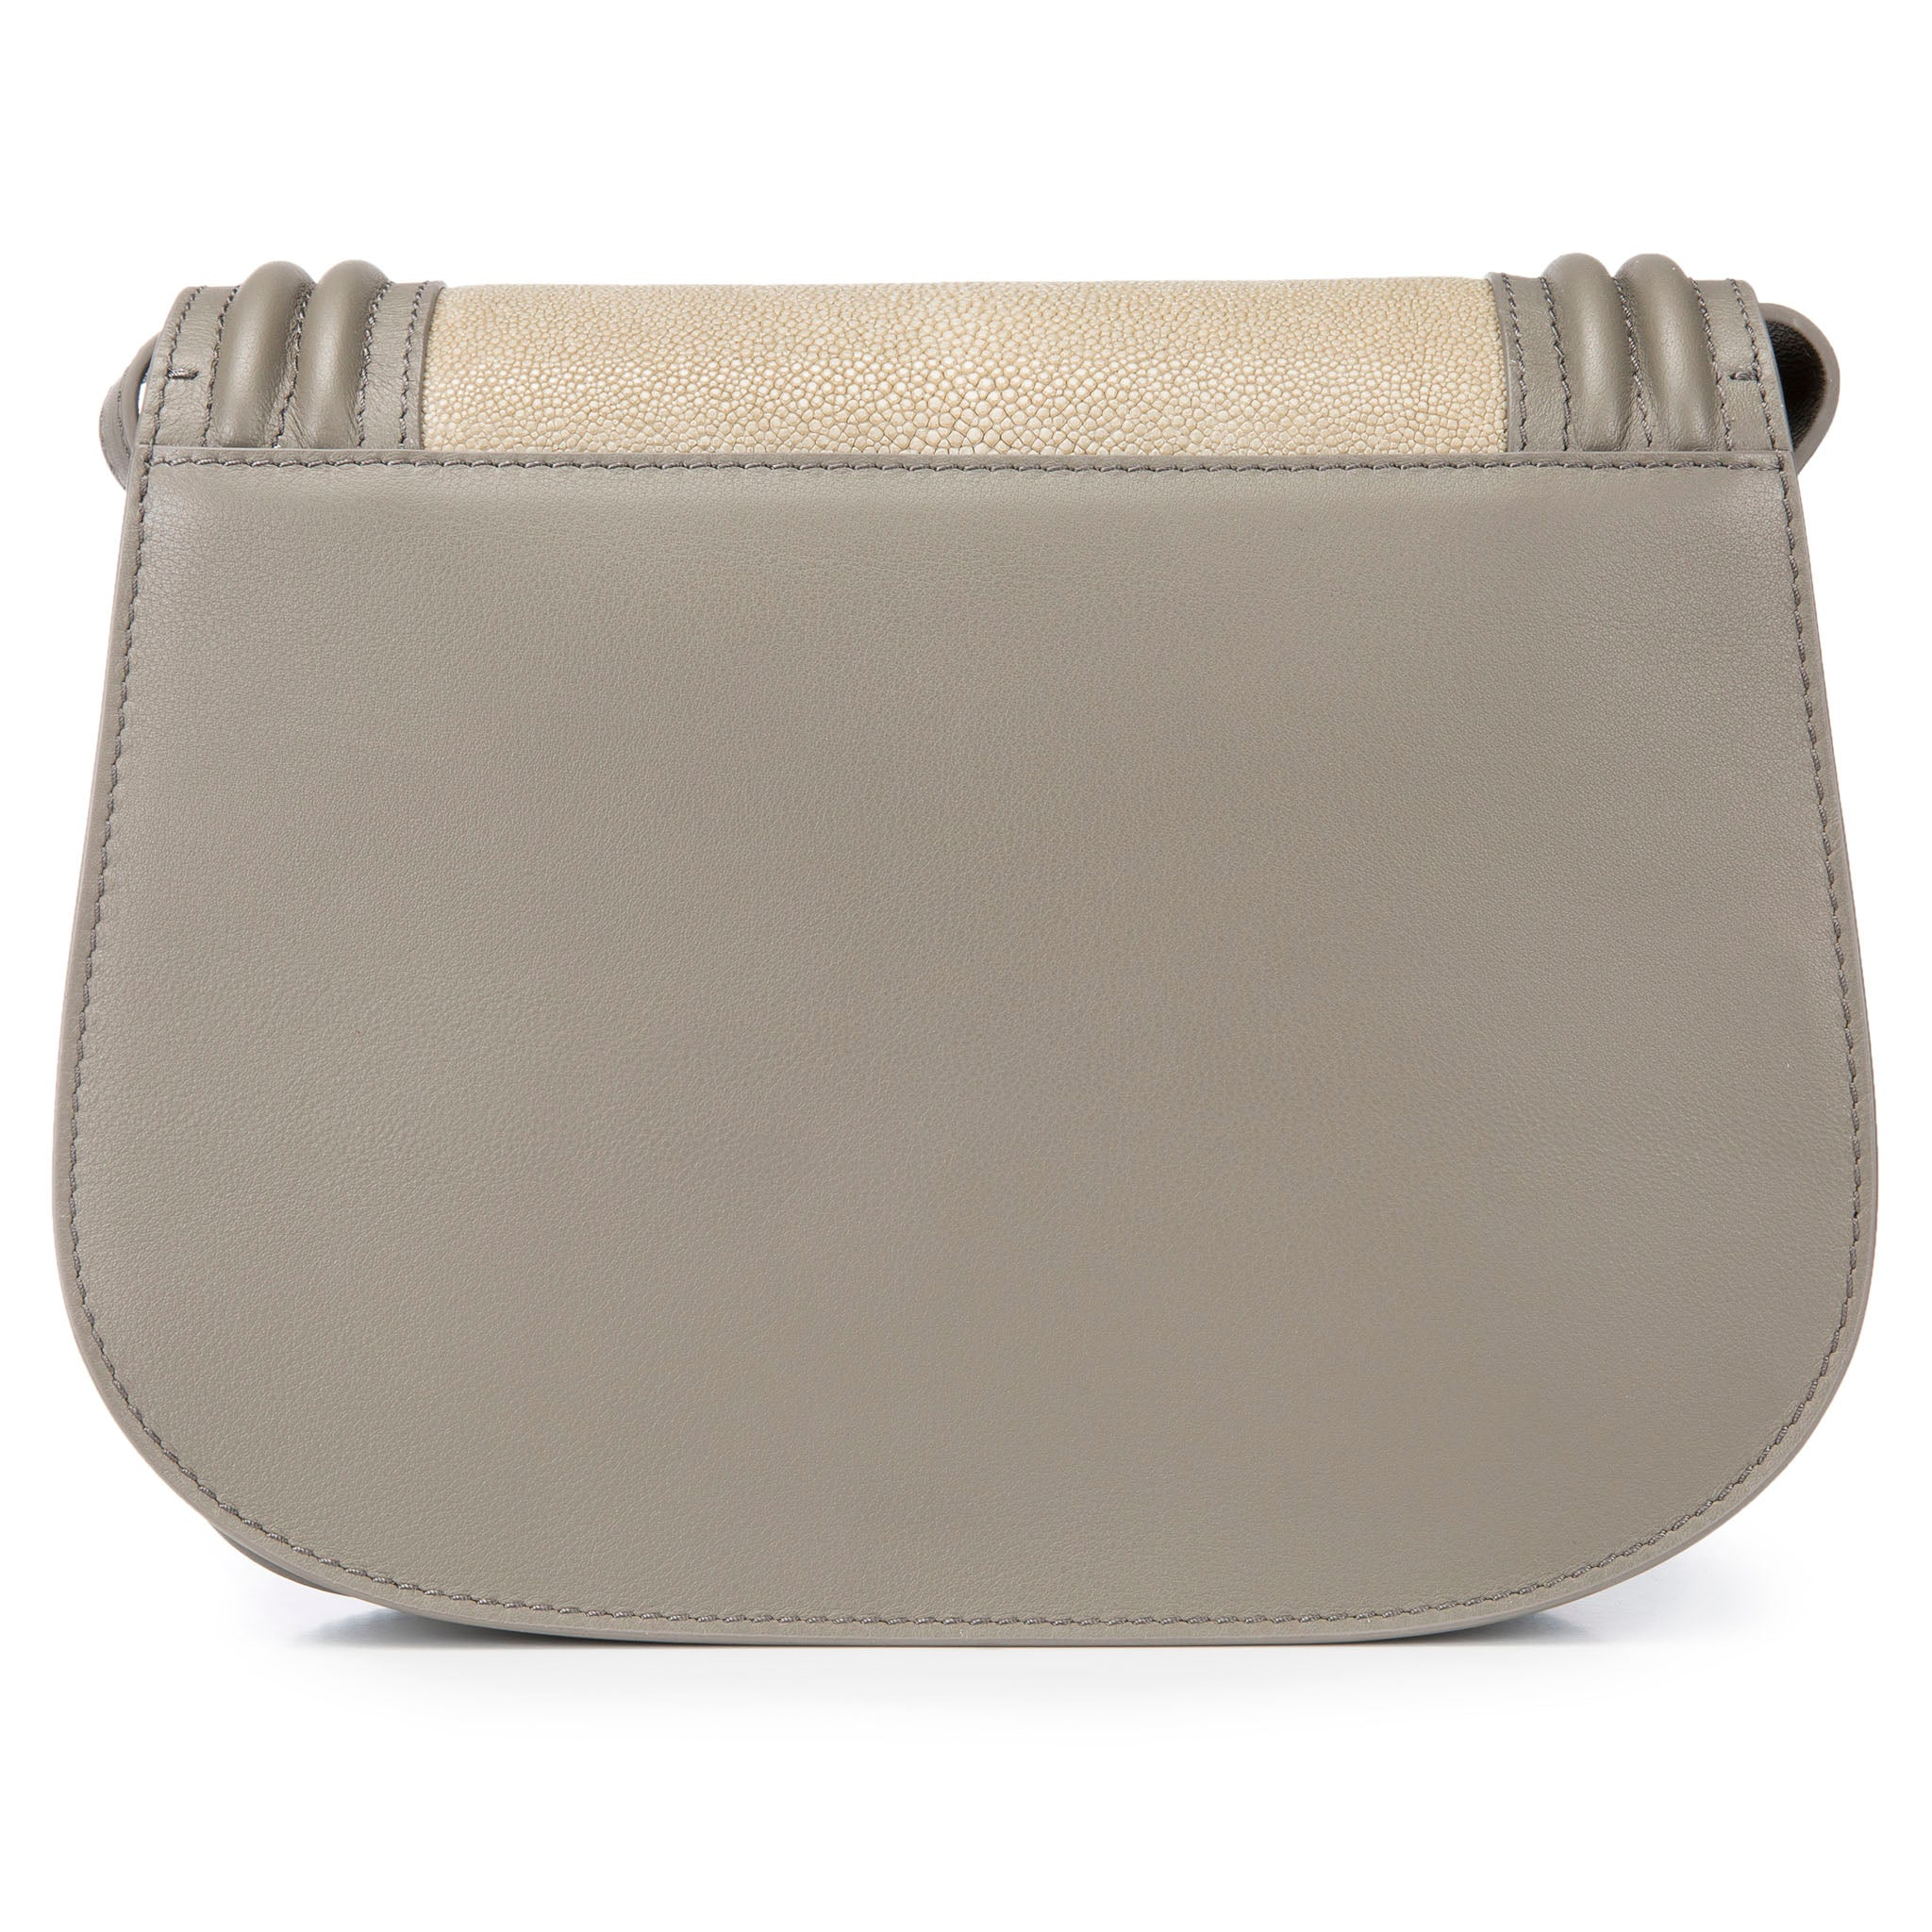 Smoke Corded Leather Framing Shagreen Front Panel Saddle Bag Back View Hazel - Vivo Direct